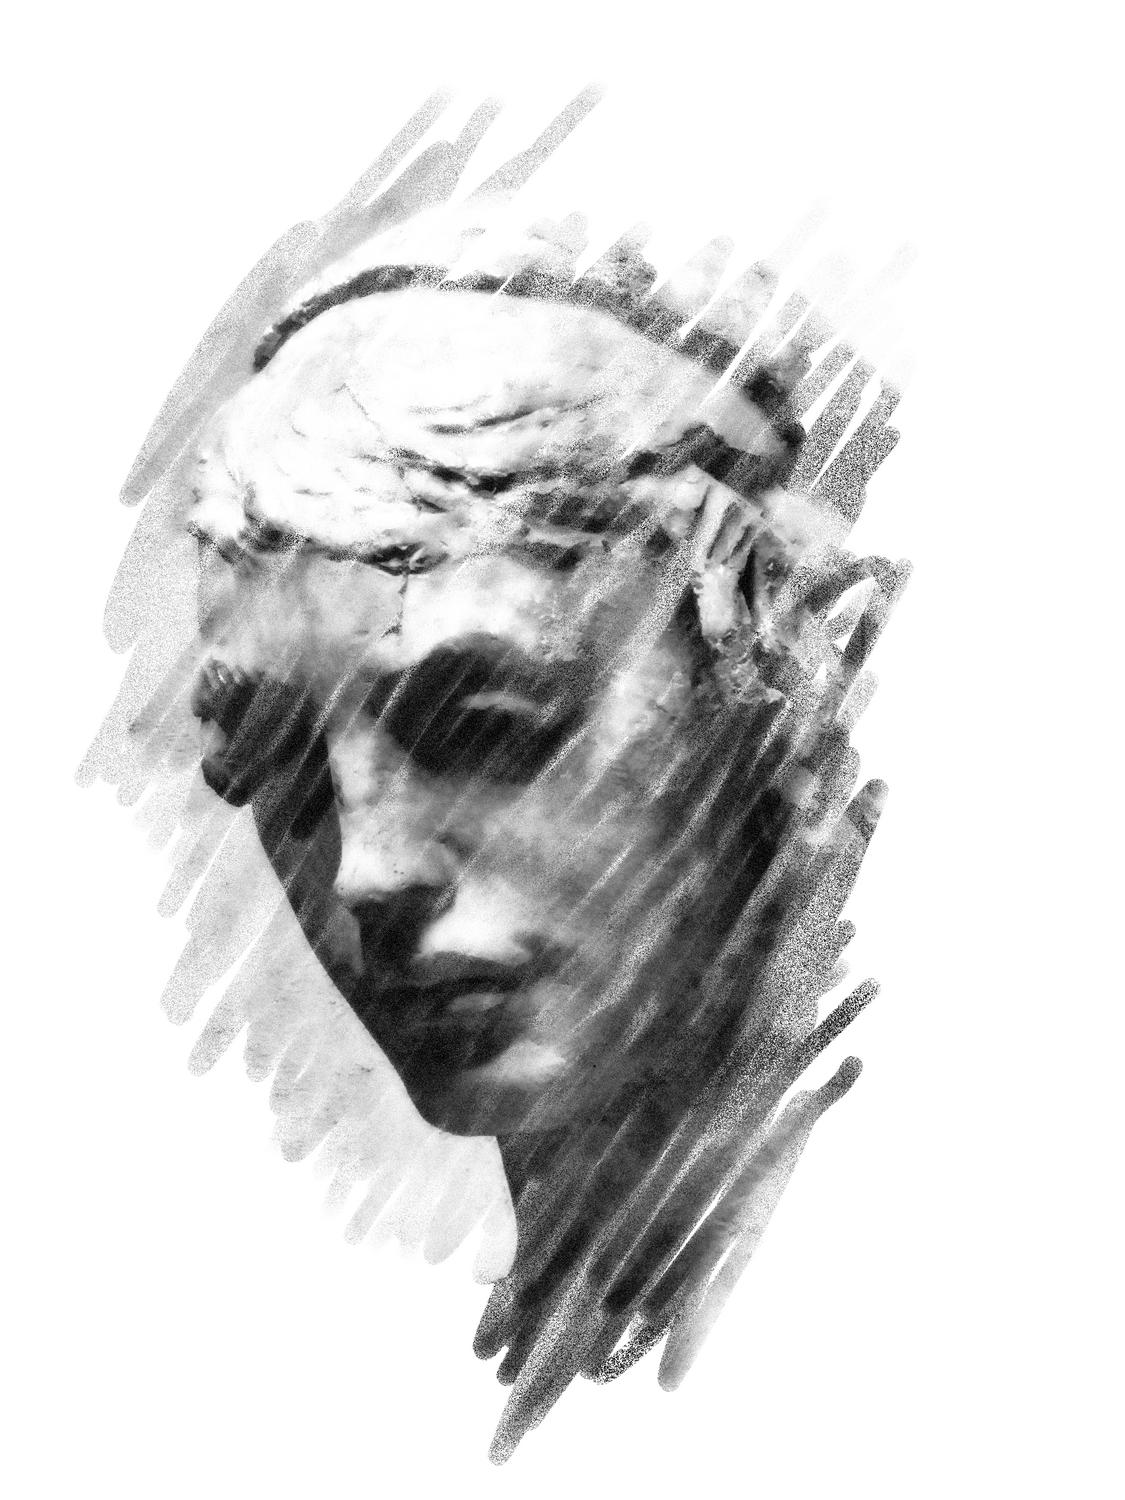 Face in black and white - by Tony Karp - Excissa, a virtual muse - Techno-Impressionist Museum - Techno-Impressionism - art - beautiful - photo photography picture - by Tony Karp